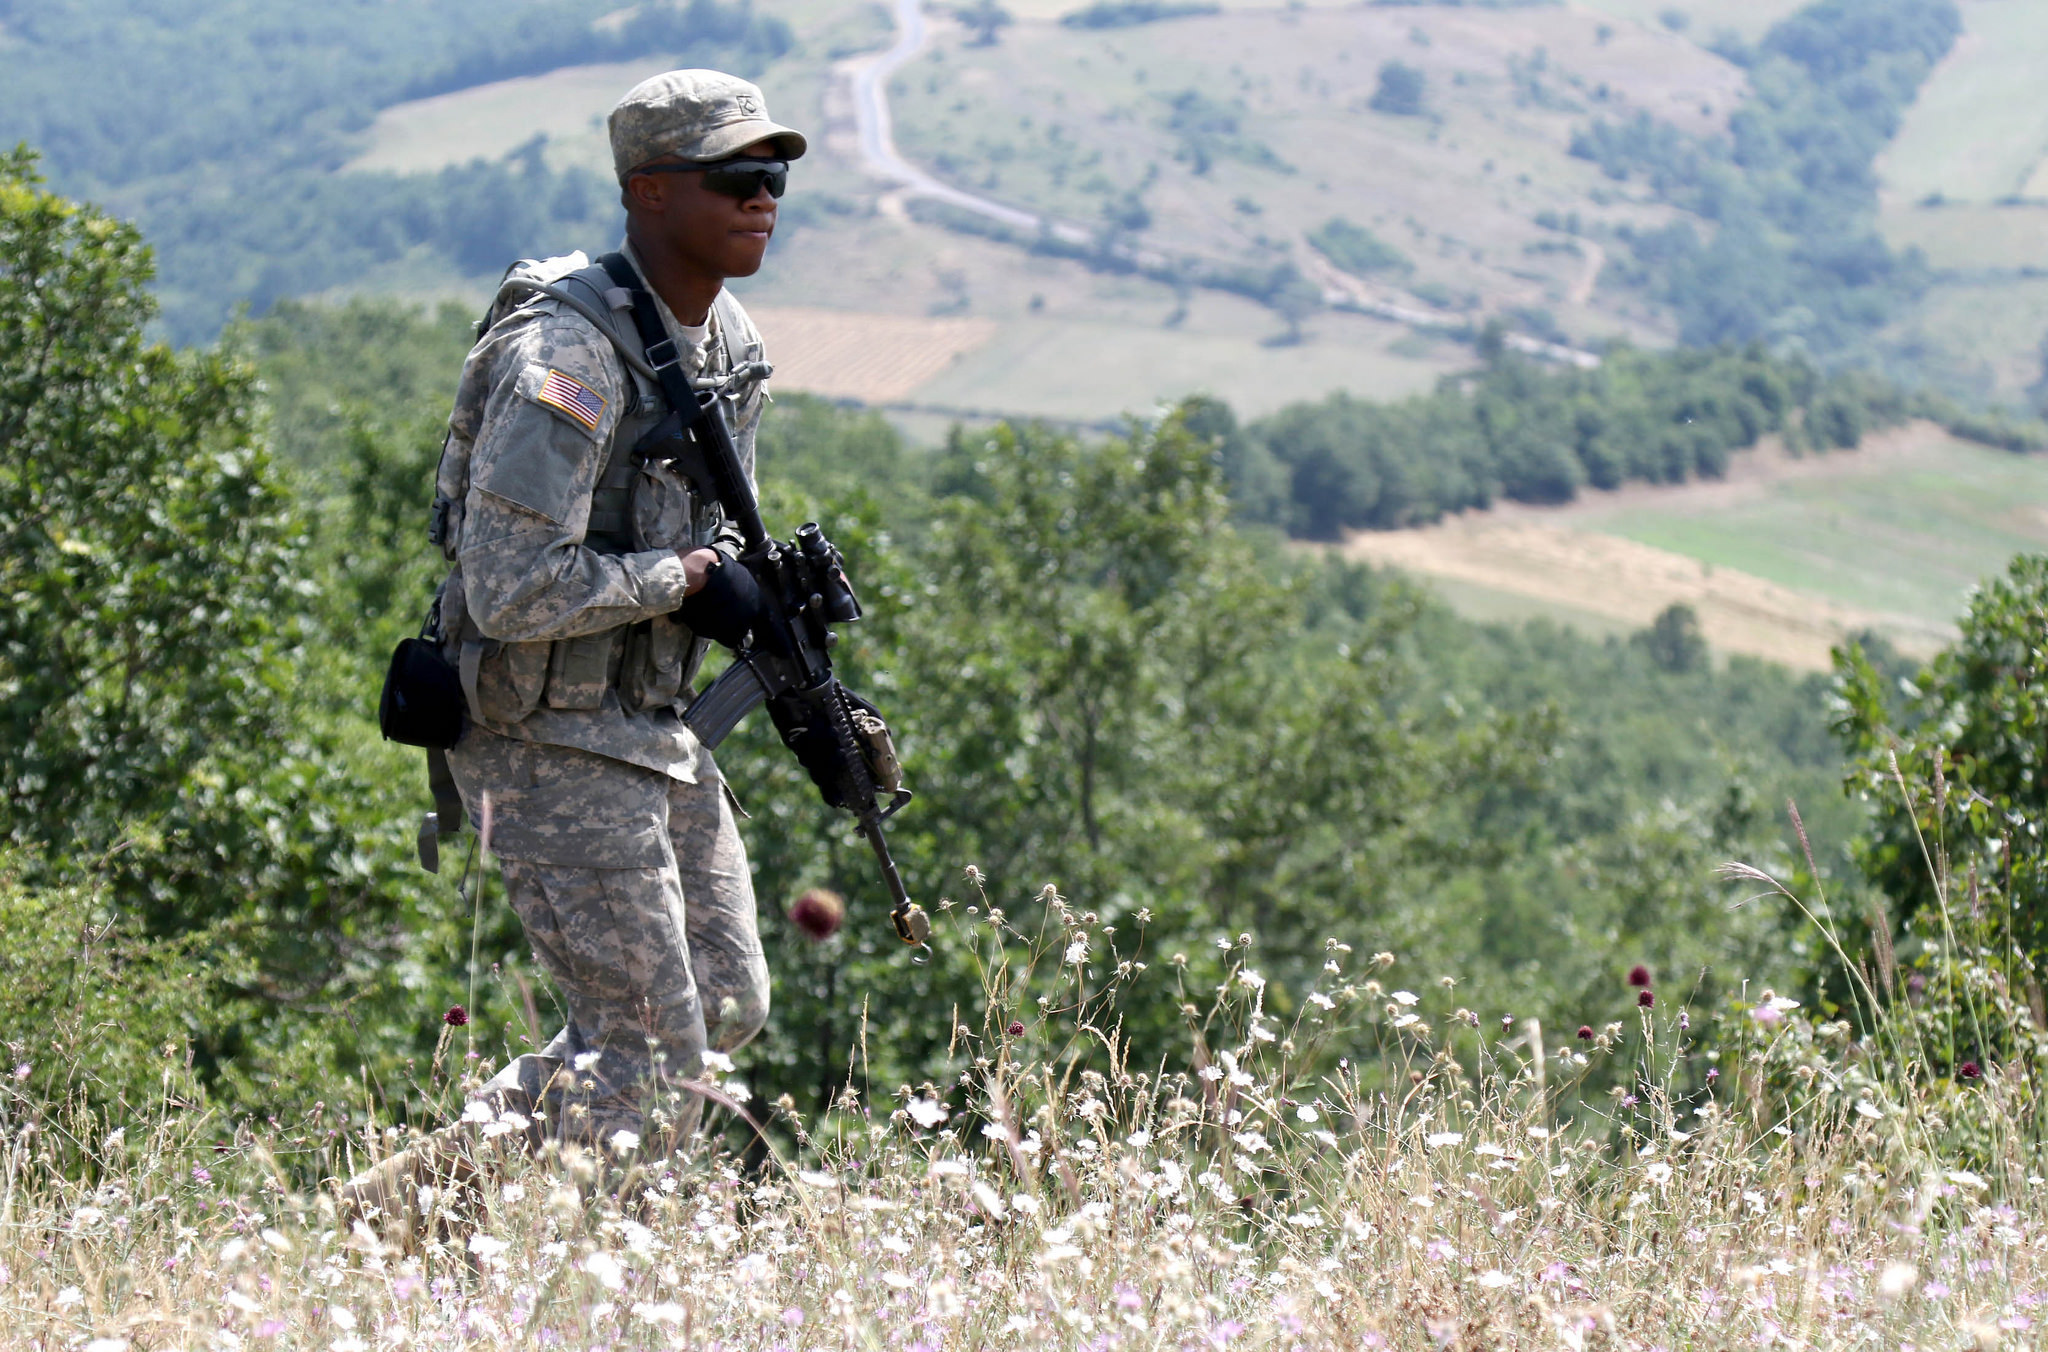 Pfc. Joshua Jones, an infantryman with the 1st Battalion, 41st Infantry Regiment, 2nd Infantry Brigade Combat Team, patrols a ridge line during a squad-level situational training exercise held in Dumnice, Kosovo, July 25, 2016. The purpose of the exercise was to train individual squad movements in preparation for a larger scale operation deemed Iron Eagle, later this year. (U.S. Army photo by: Staff Sgt. Thomas Duval, Multinational Battle Group-East Public Affairs)